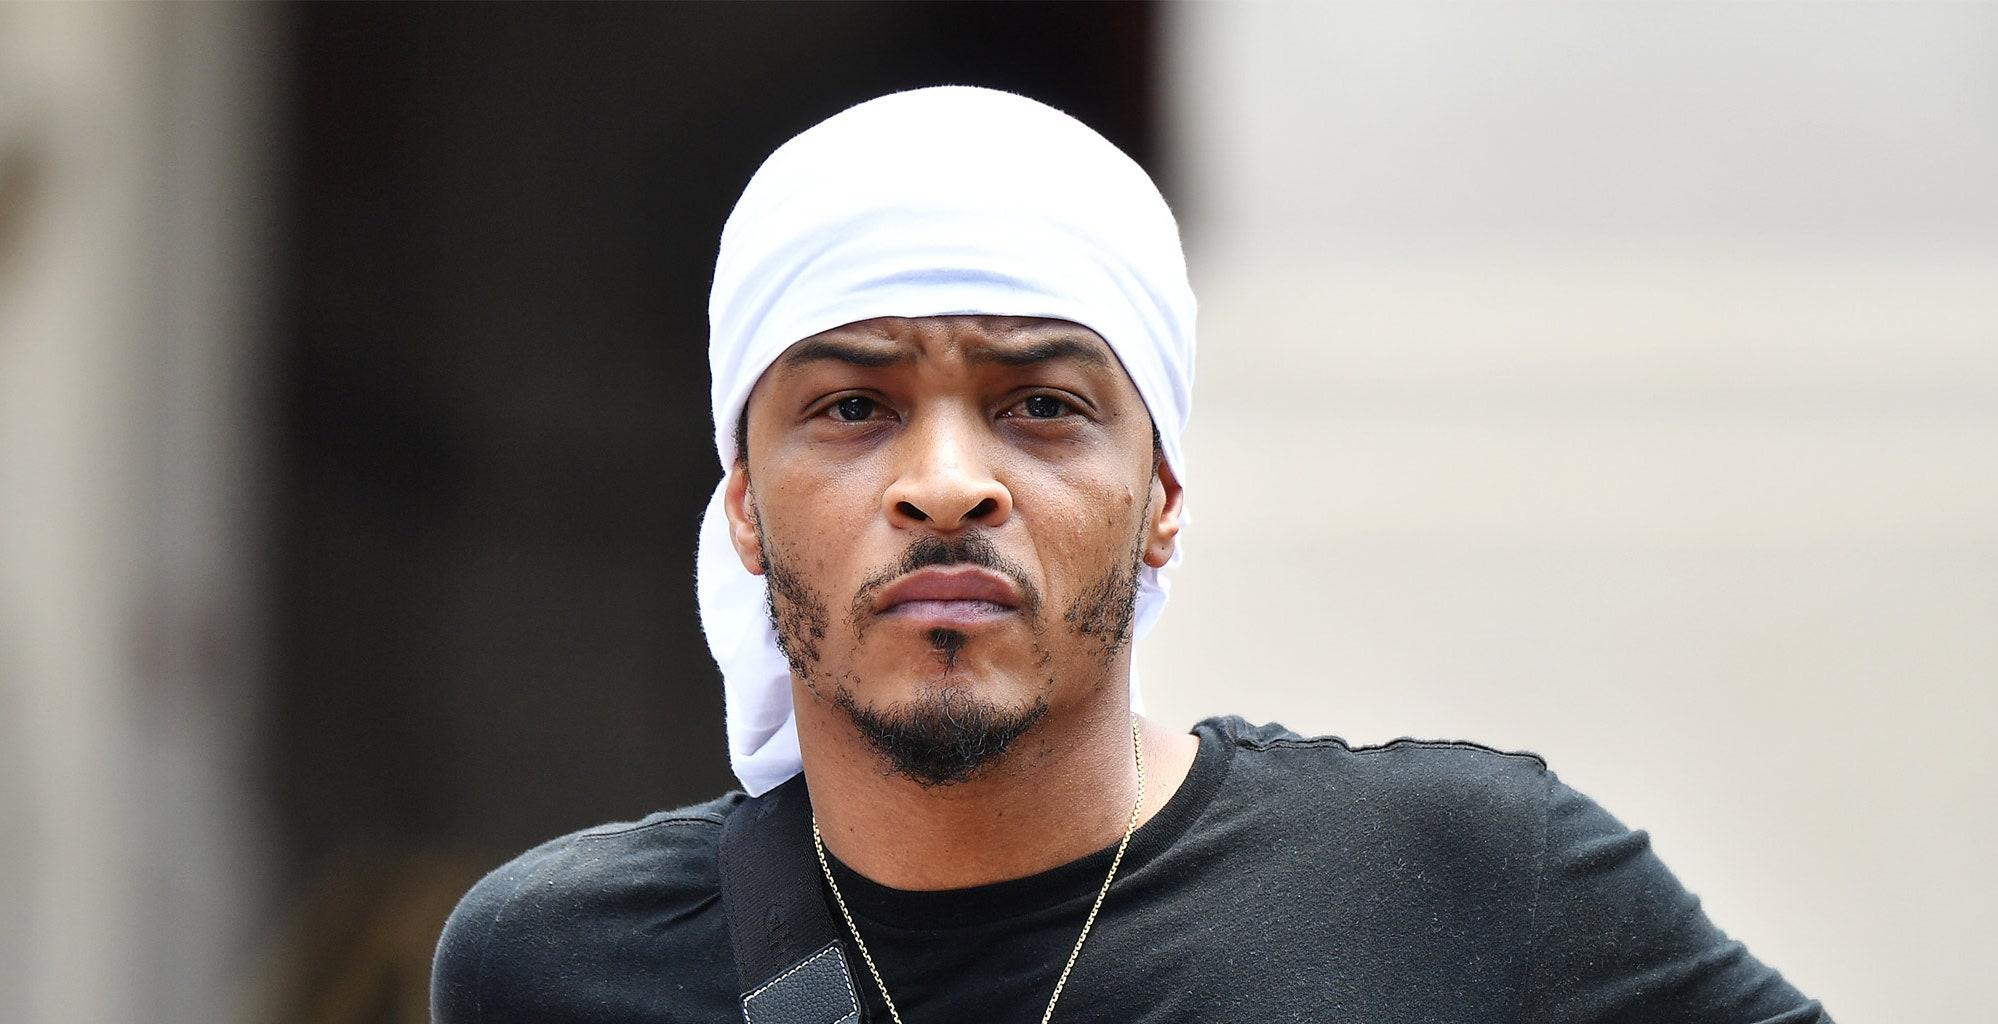 T.I. Is Asking For His Fans' Help In This Serious Matter